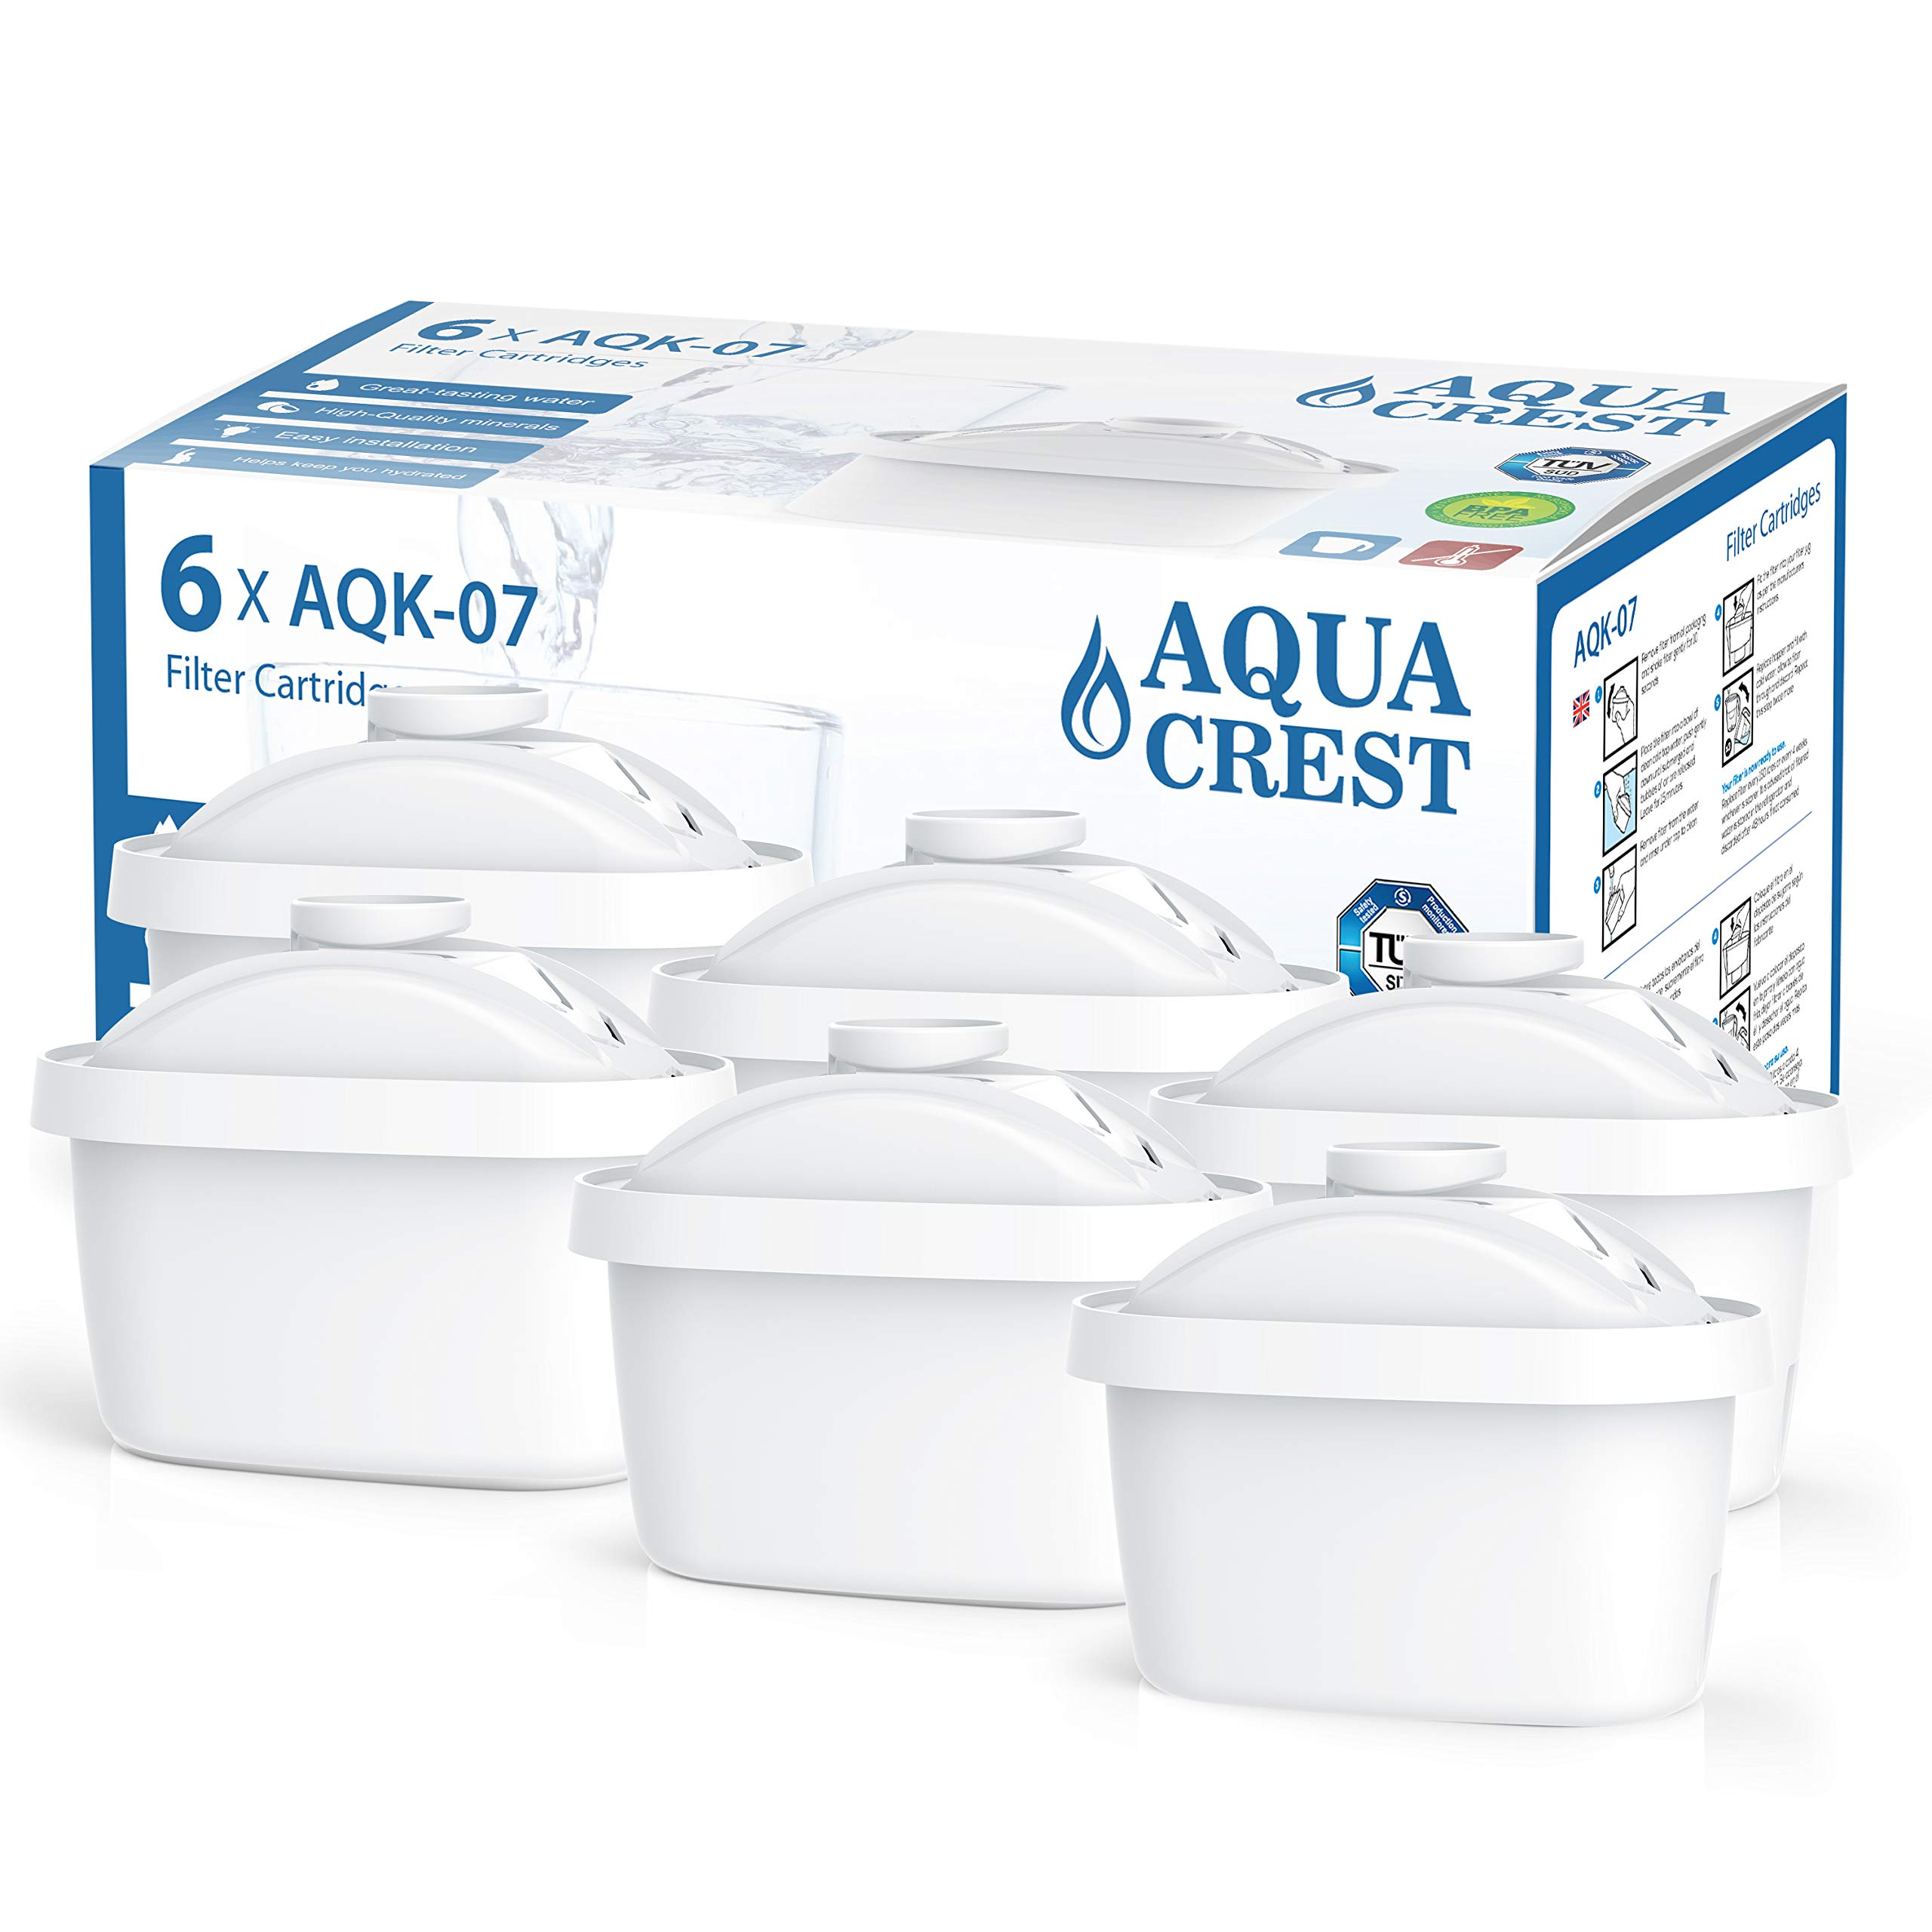 AQUACREST TÜV SÜD Certified Maxtra Refill Catridge, Removes Lead, Arsenic and More, Compatible with Brita Mavea Maxtra, Maxtra+, 105731, 1001122 (Pack of 6) by AQUA CREST